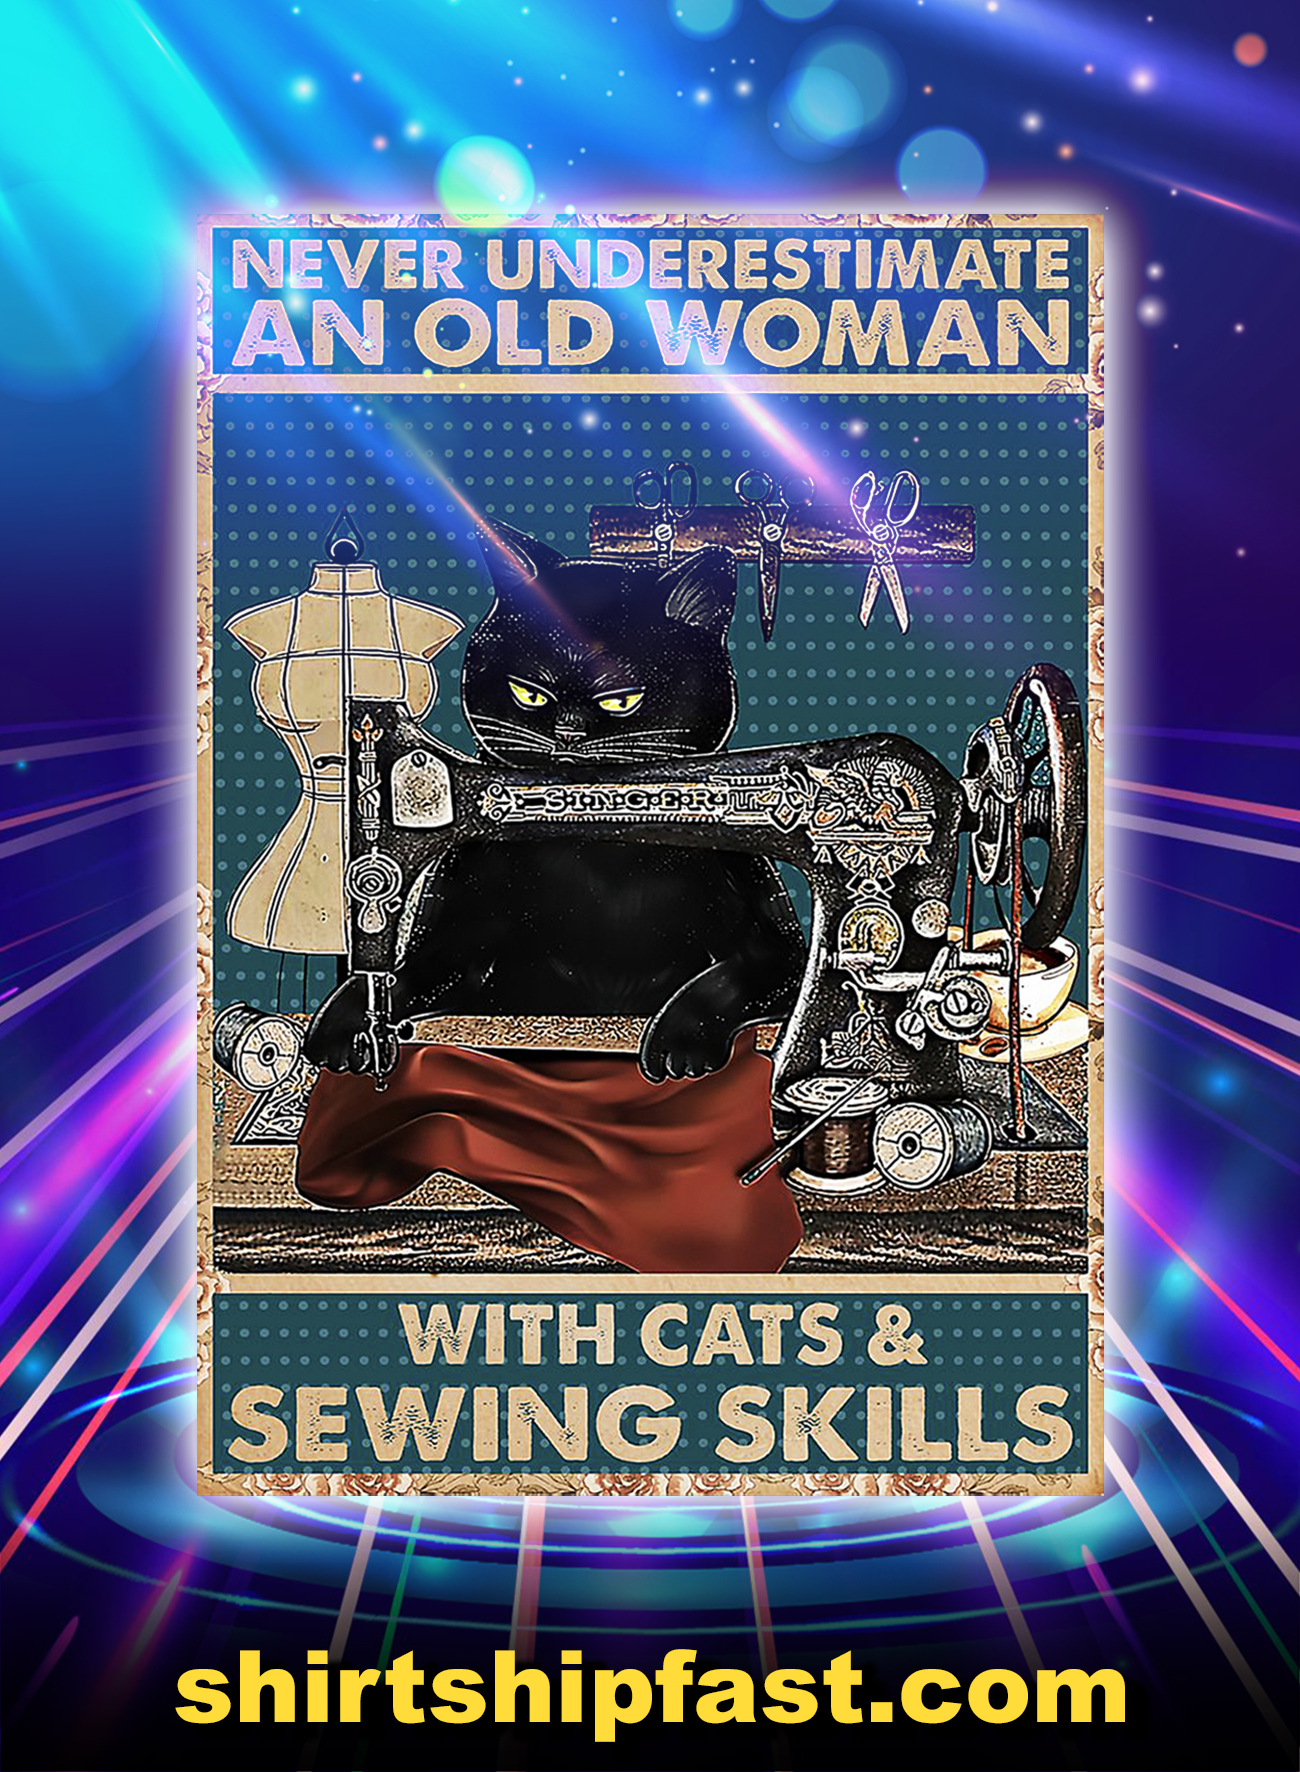 Never underestimate an old woman with cats and sewing skills poster - A1